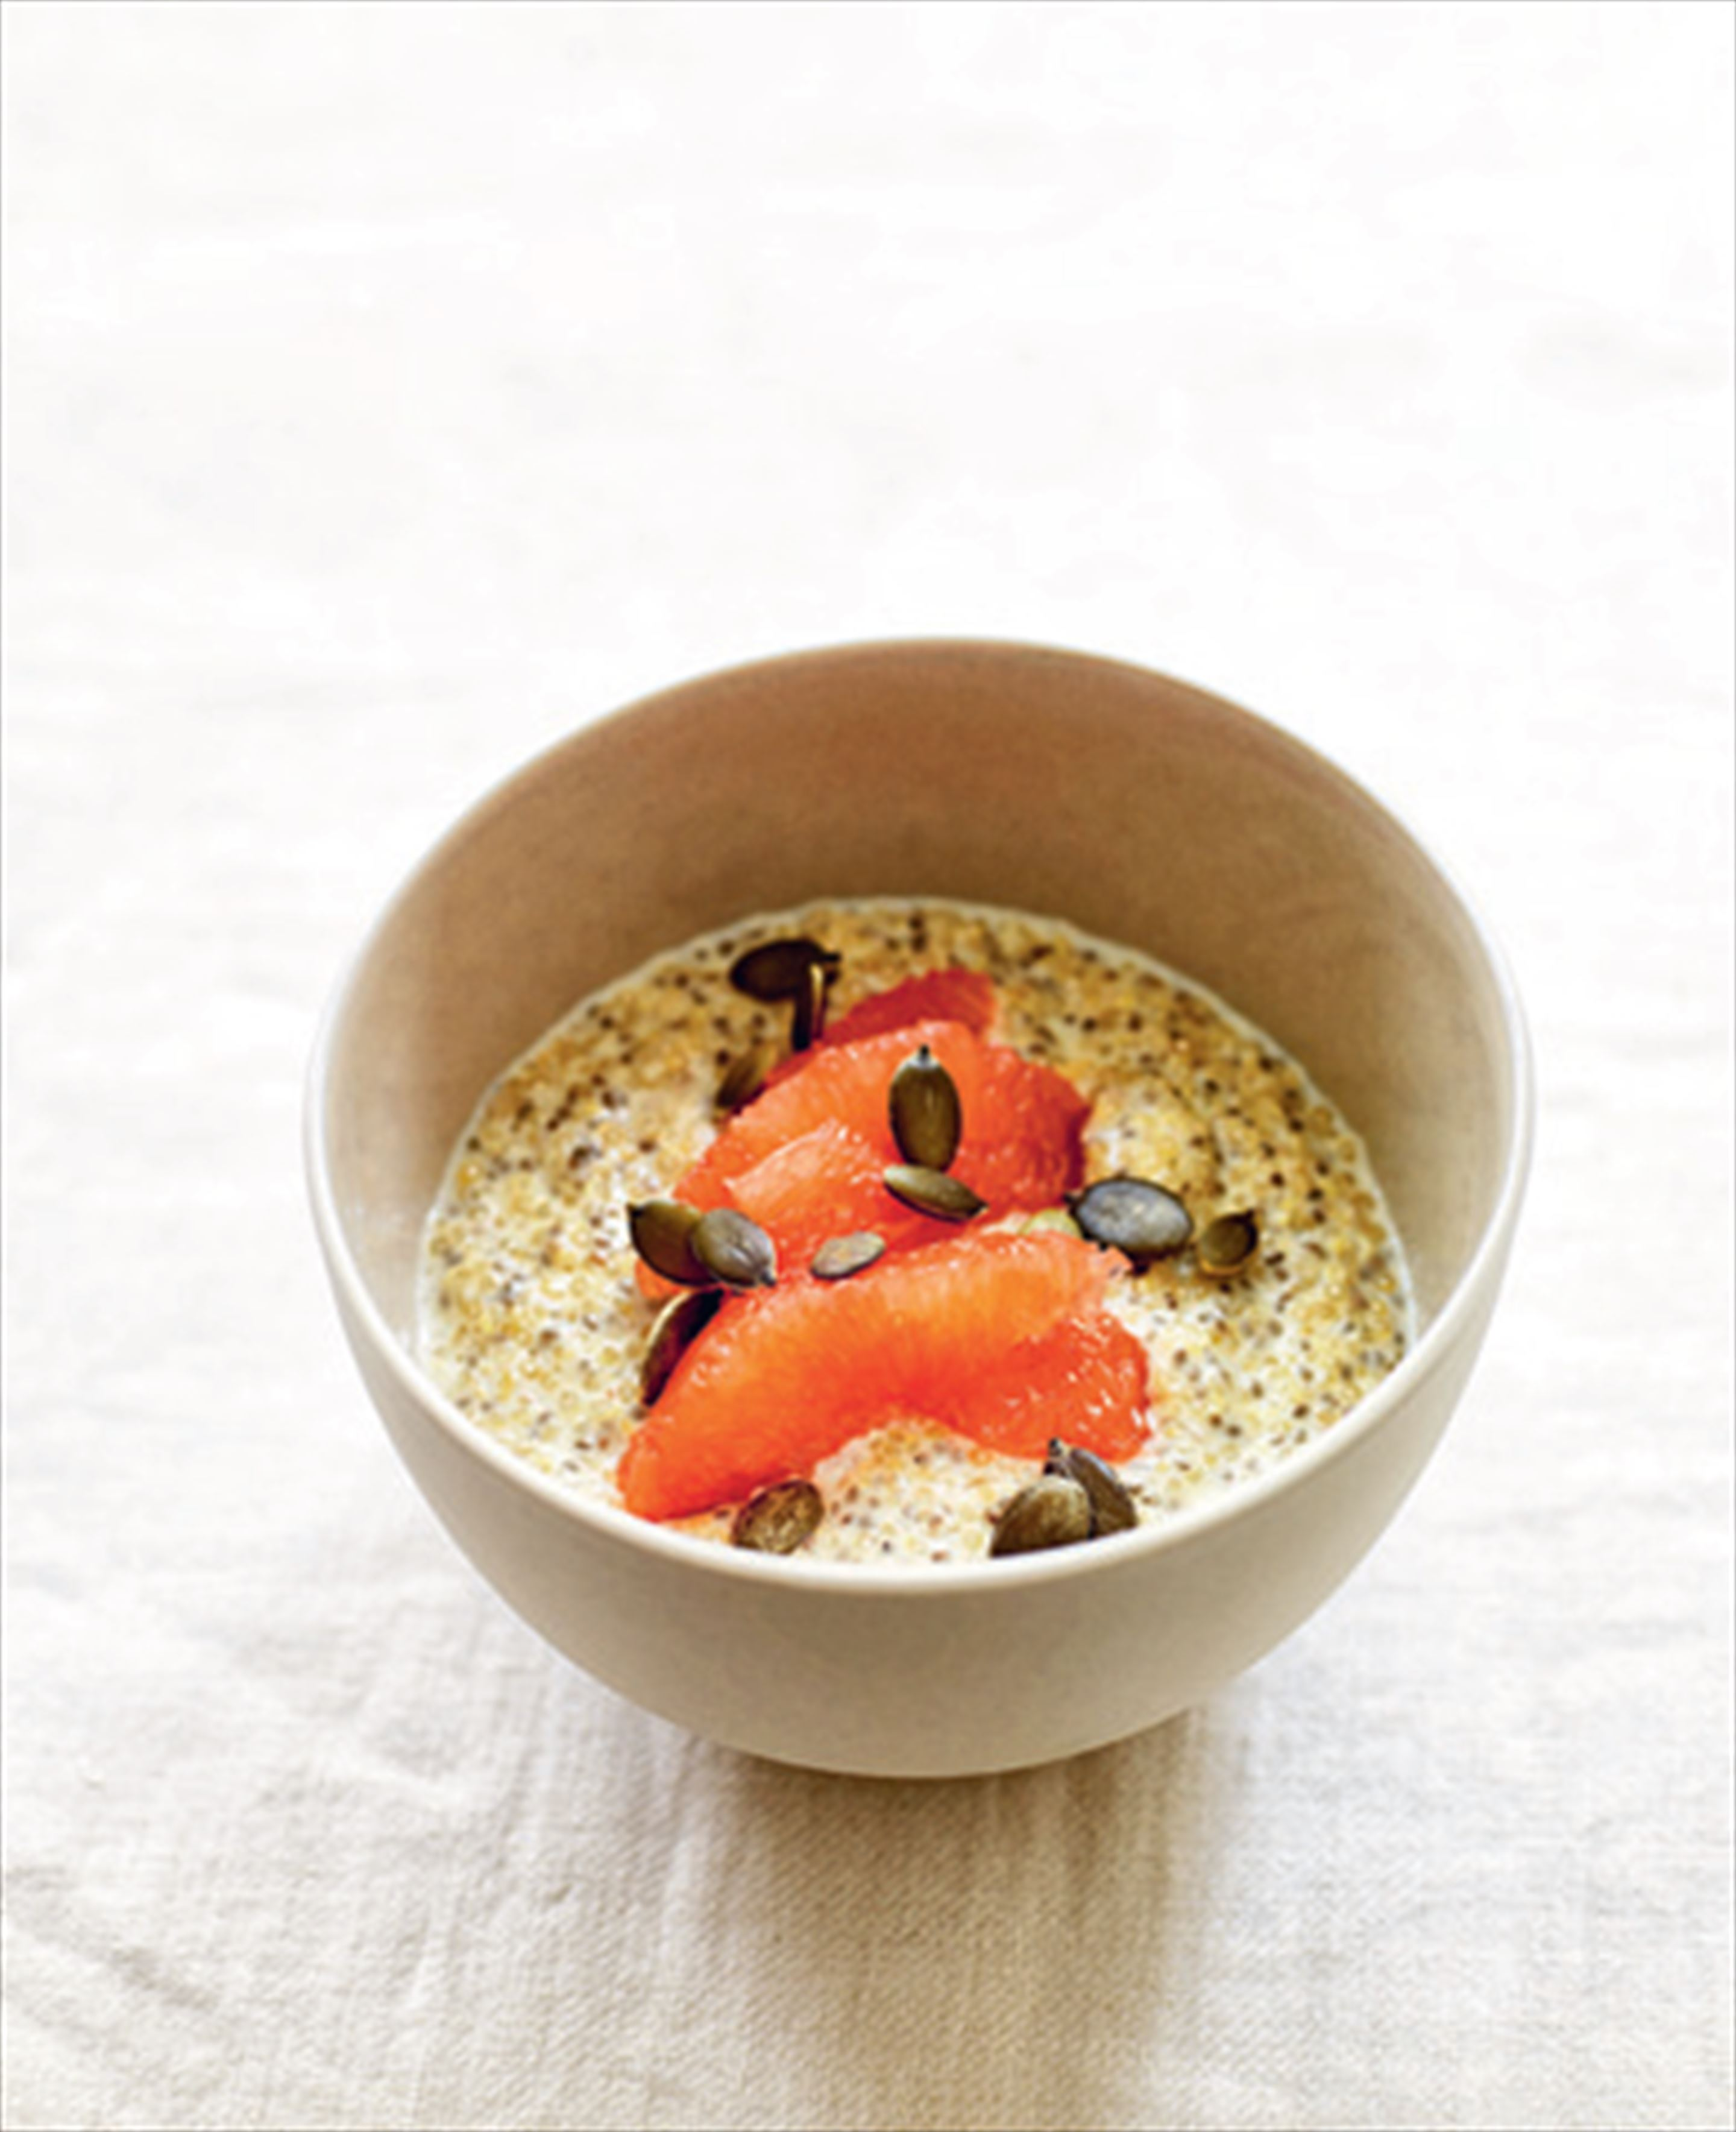 Quinoa porridge with pink grapefruit, pumpkin seeds & chia seeds